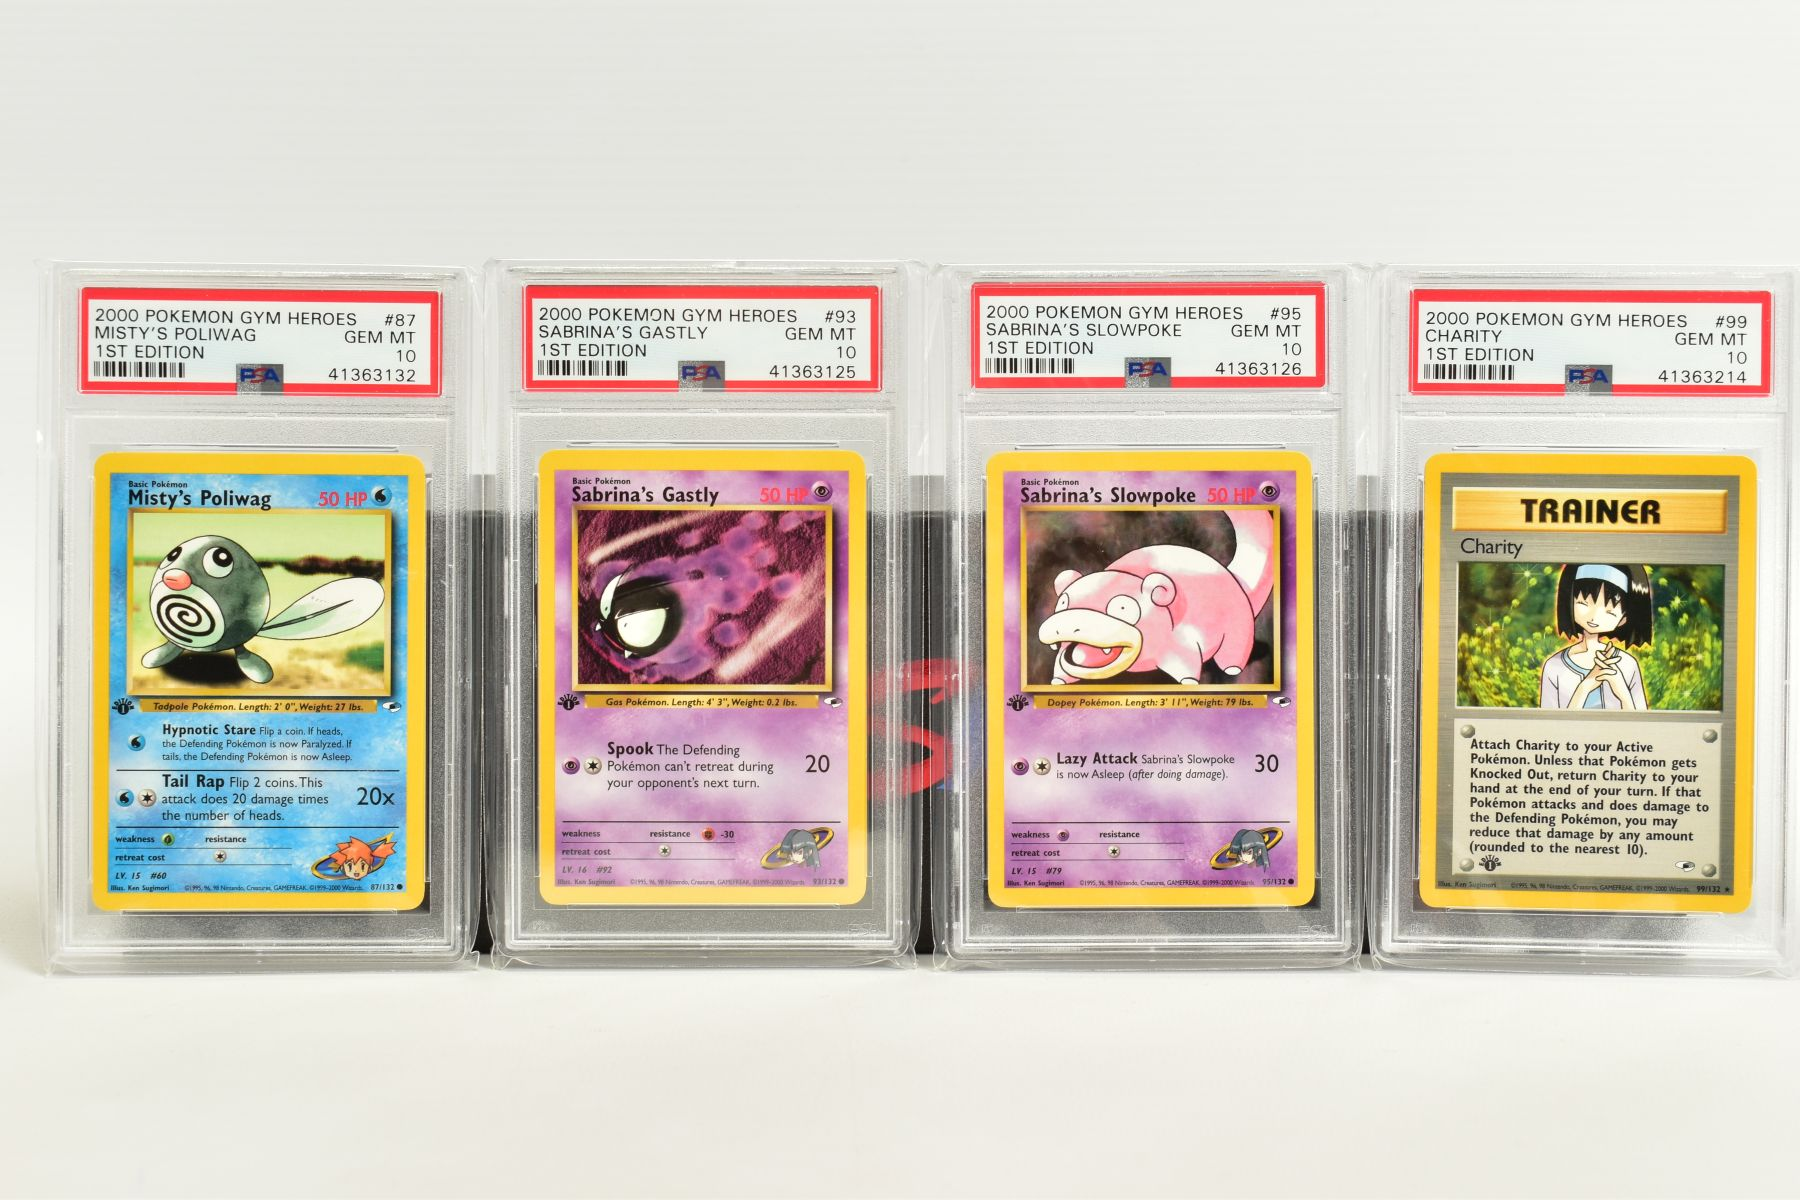 A QUANTITY OF PSA GRADED POKEMON 1ST EDITION GYM HEROES AND GYM CHALLENGE SET CARDS, all are - Image 10 of 12